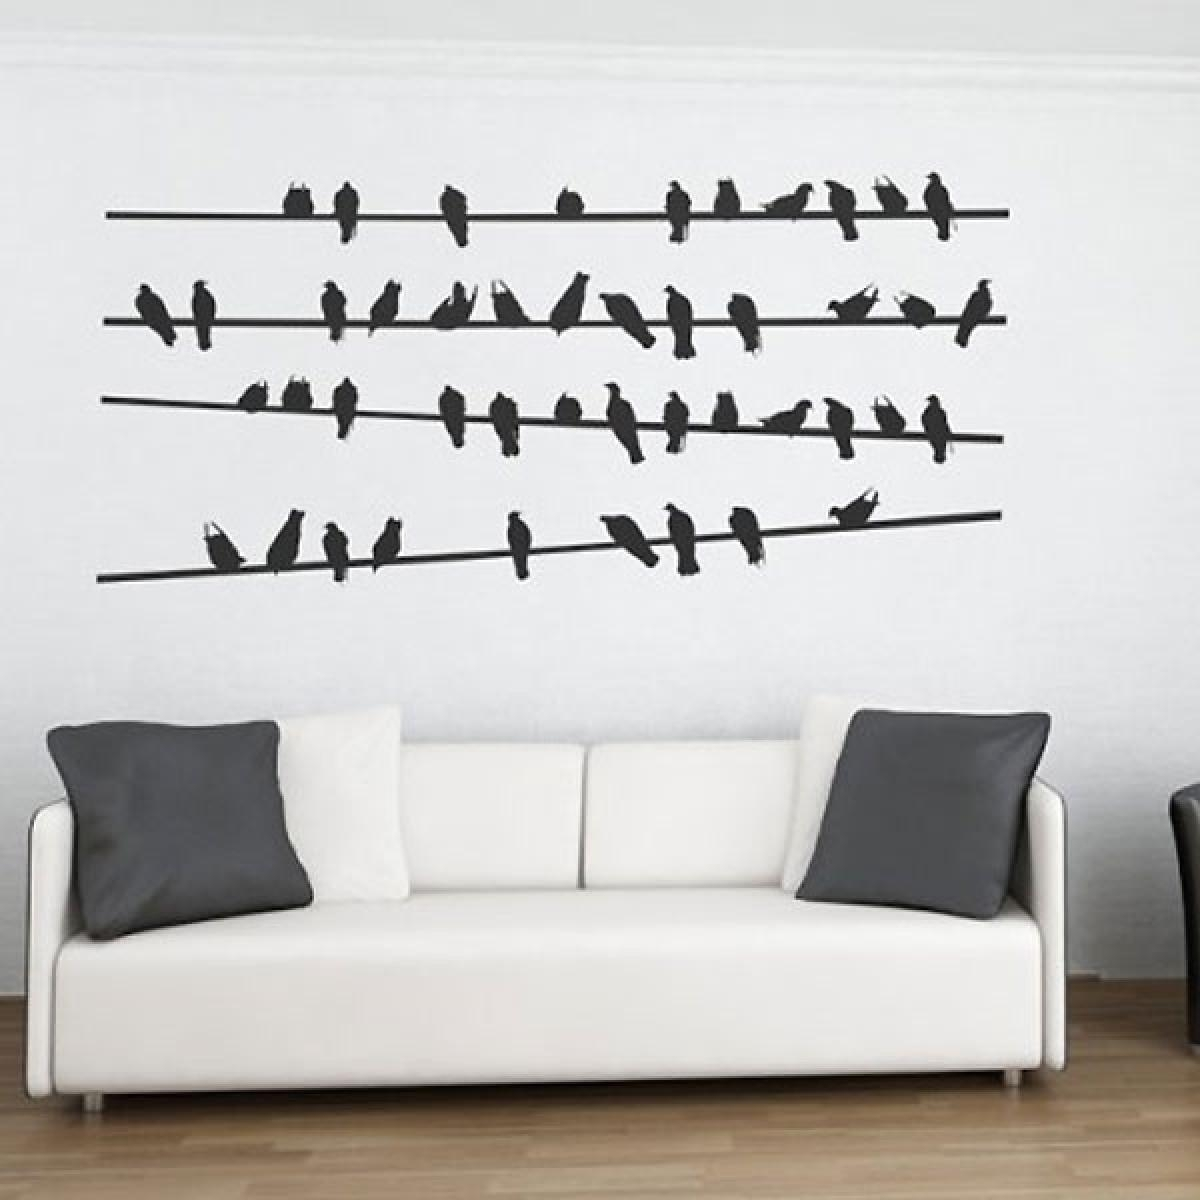 Wall Art: Outstanding Bird Wall Decor Bird Wall Sculptures, Metal pertaining to Target Bird Wall Decor